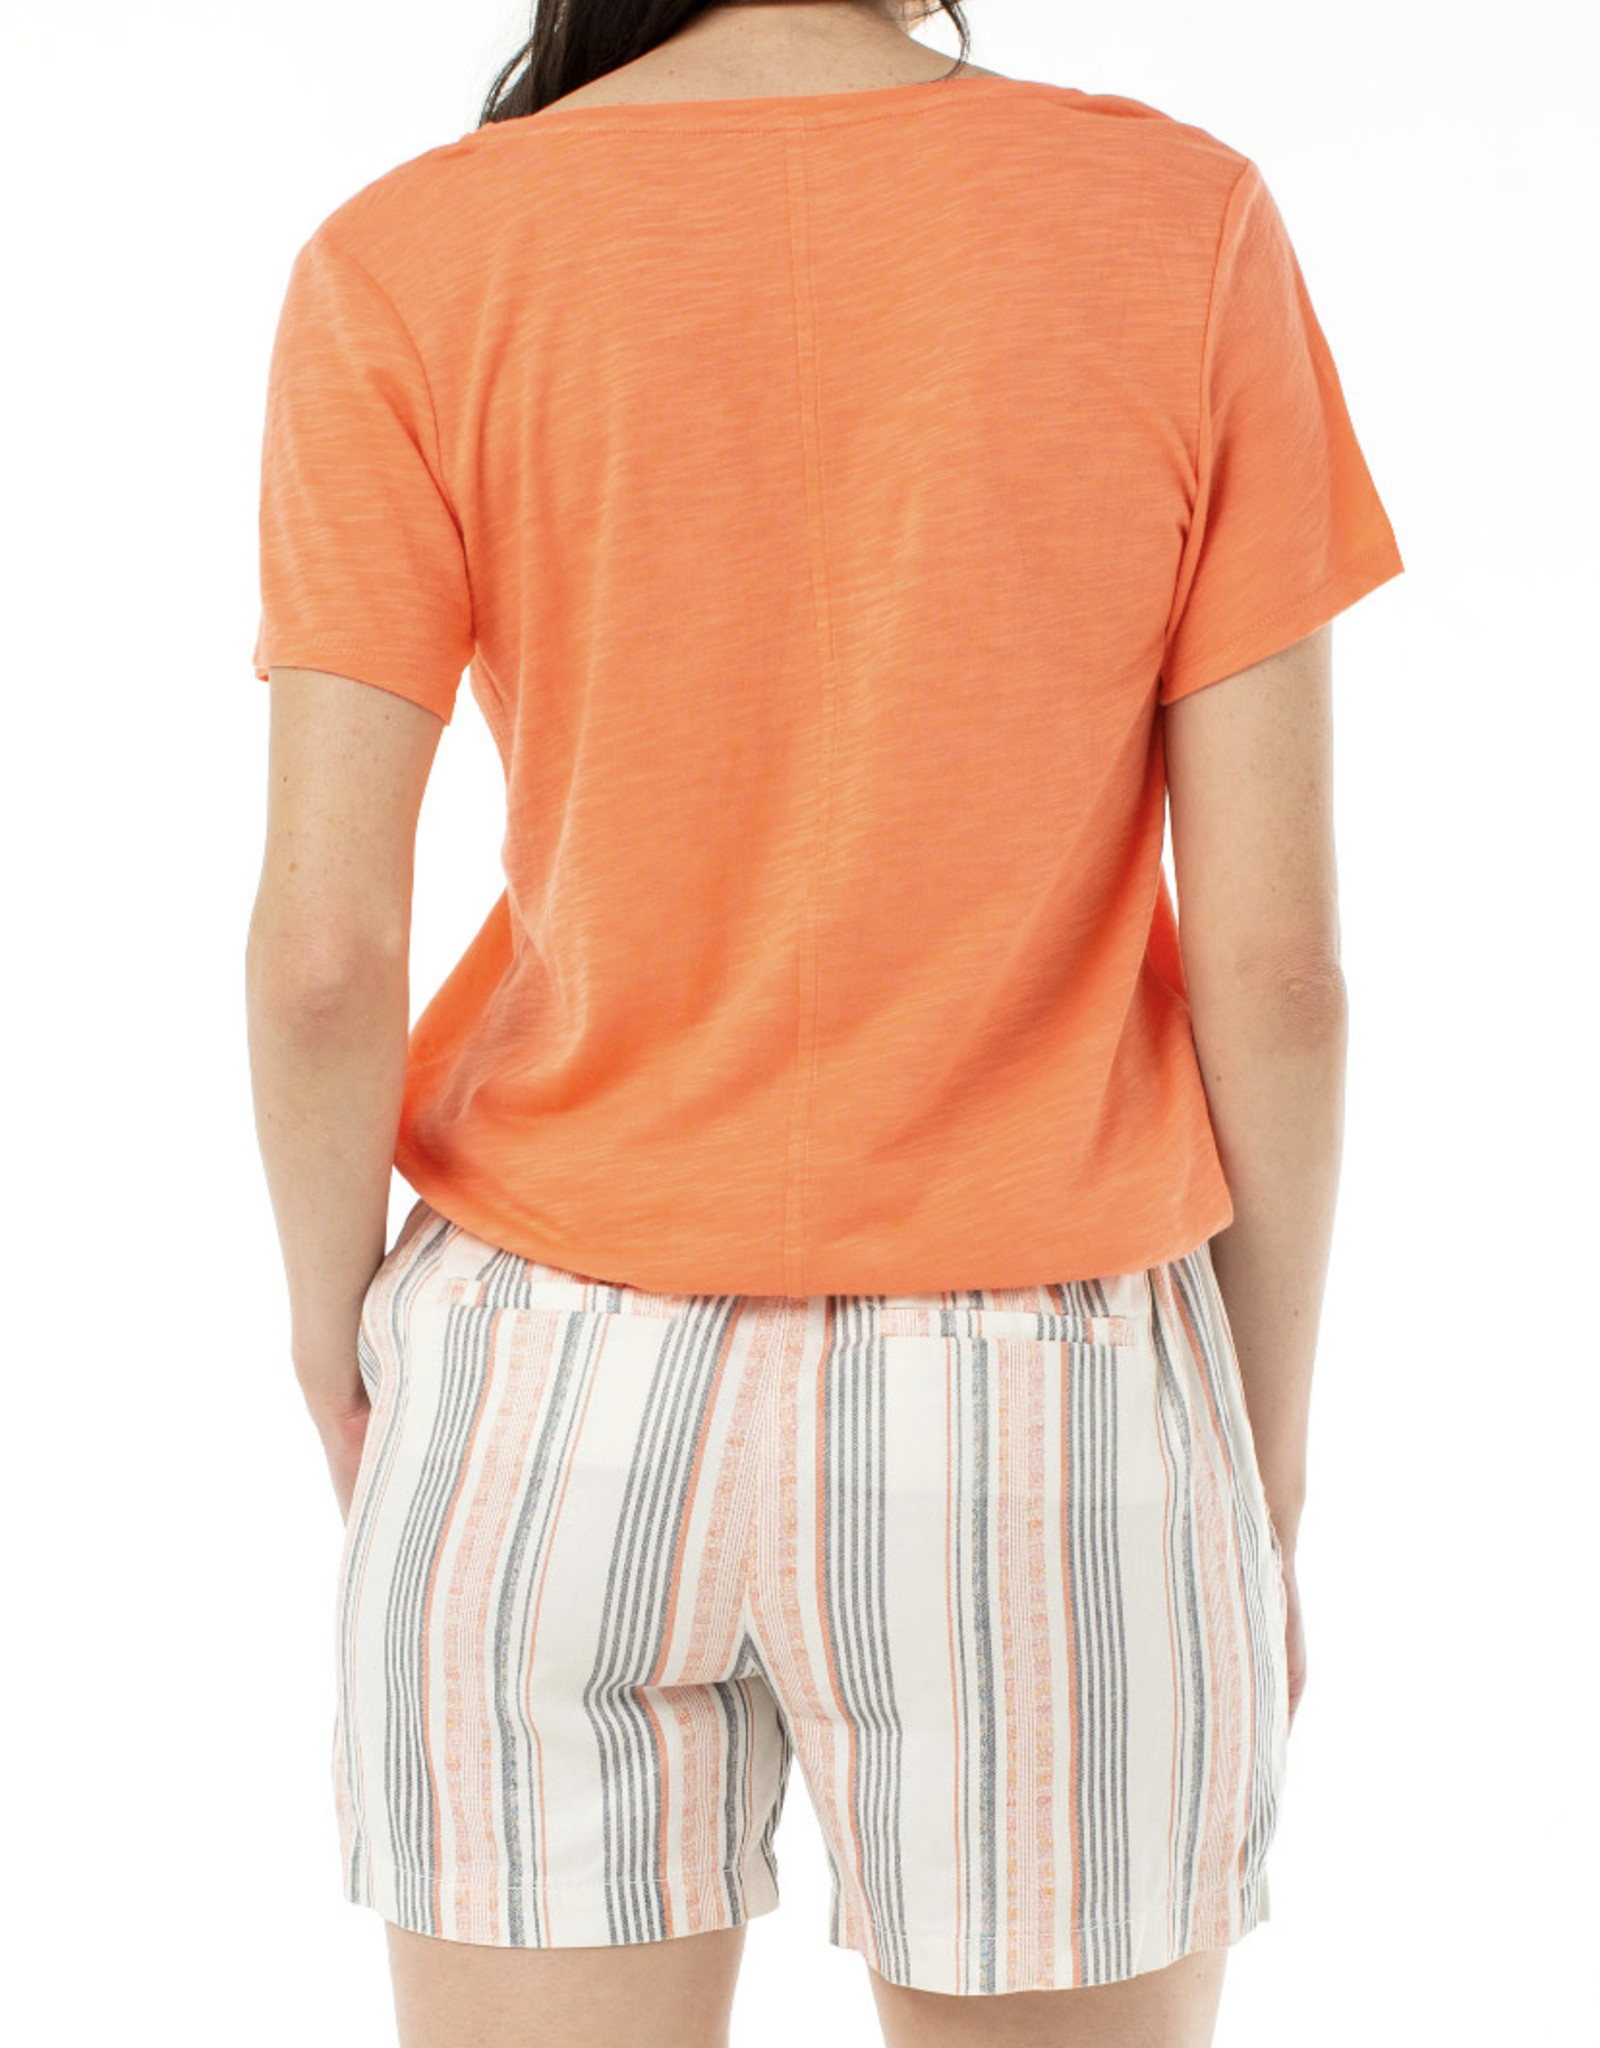 Liverpool S/s v-neck tee Light Coral